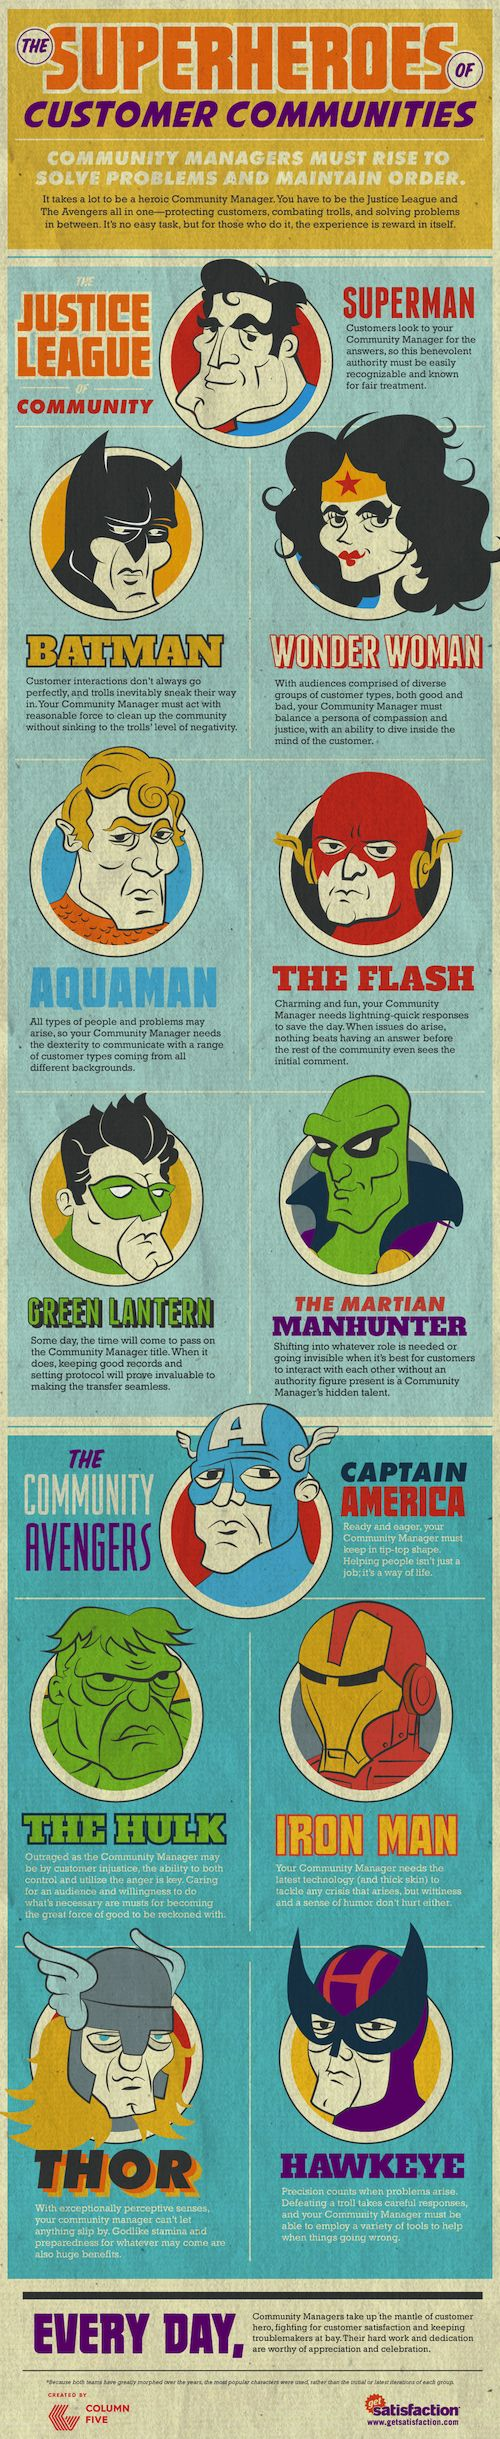 Are You the Aquaman of Your Company? Why Community Managers Have Superhero Skills